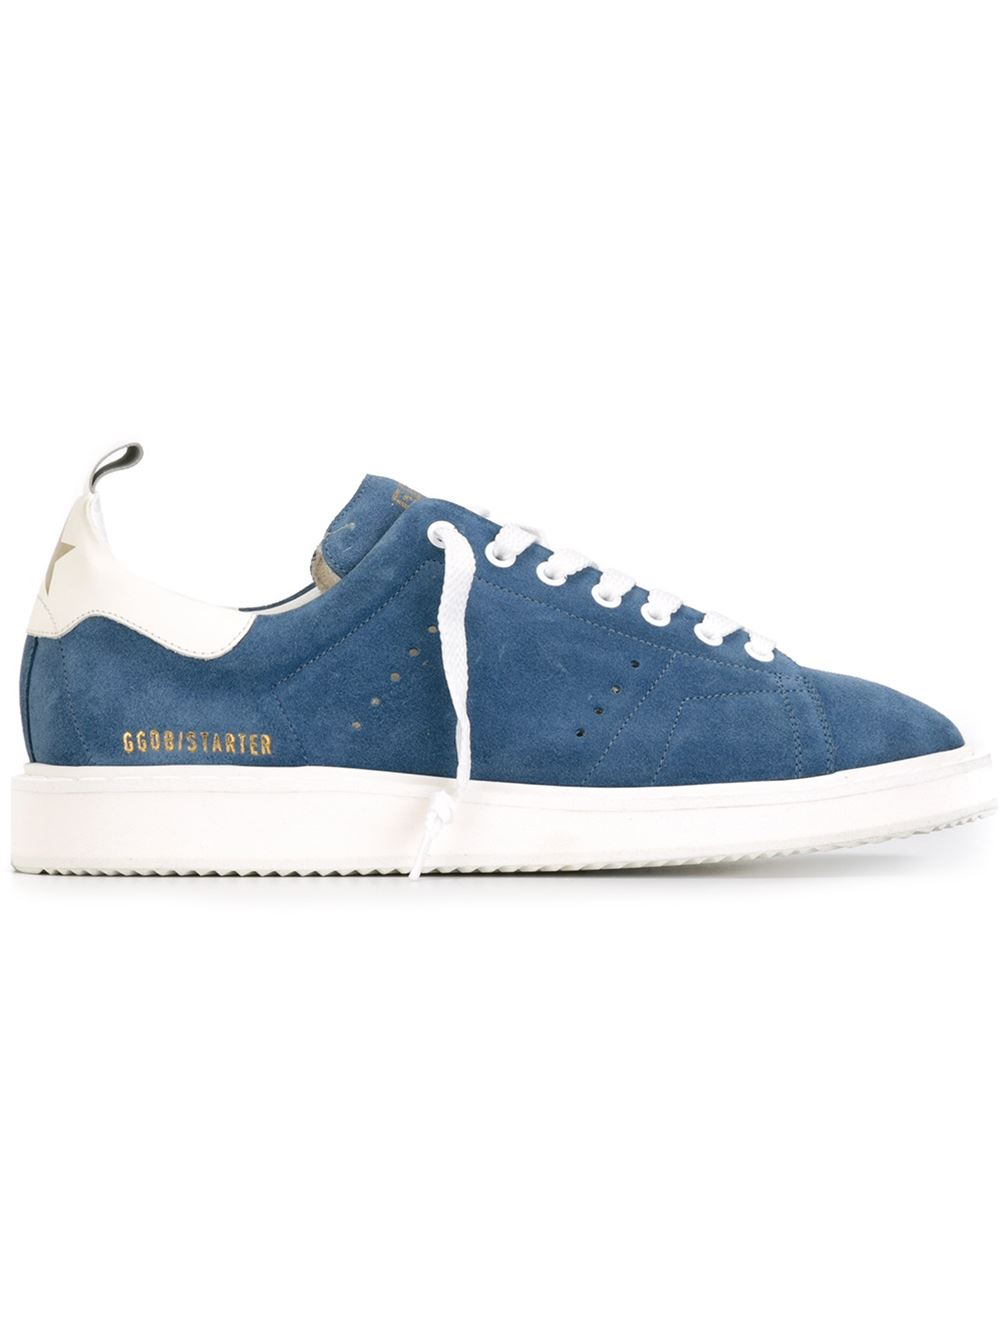 Golden Goose Men Starter Sneakers In Lake Blue Suede With White Leather